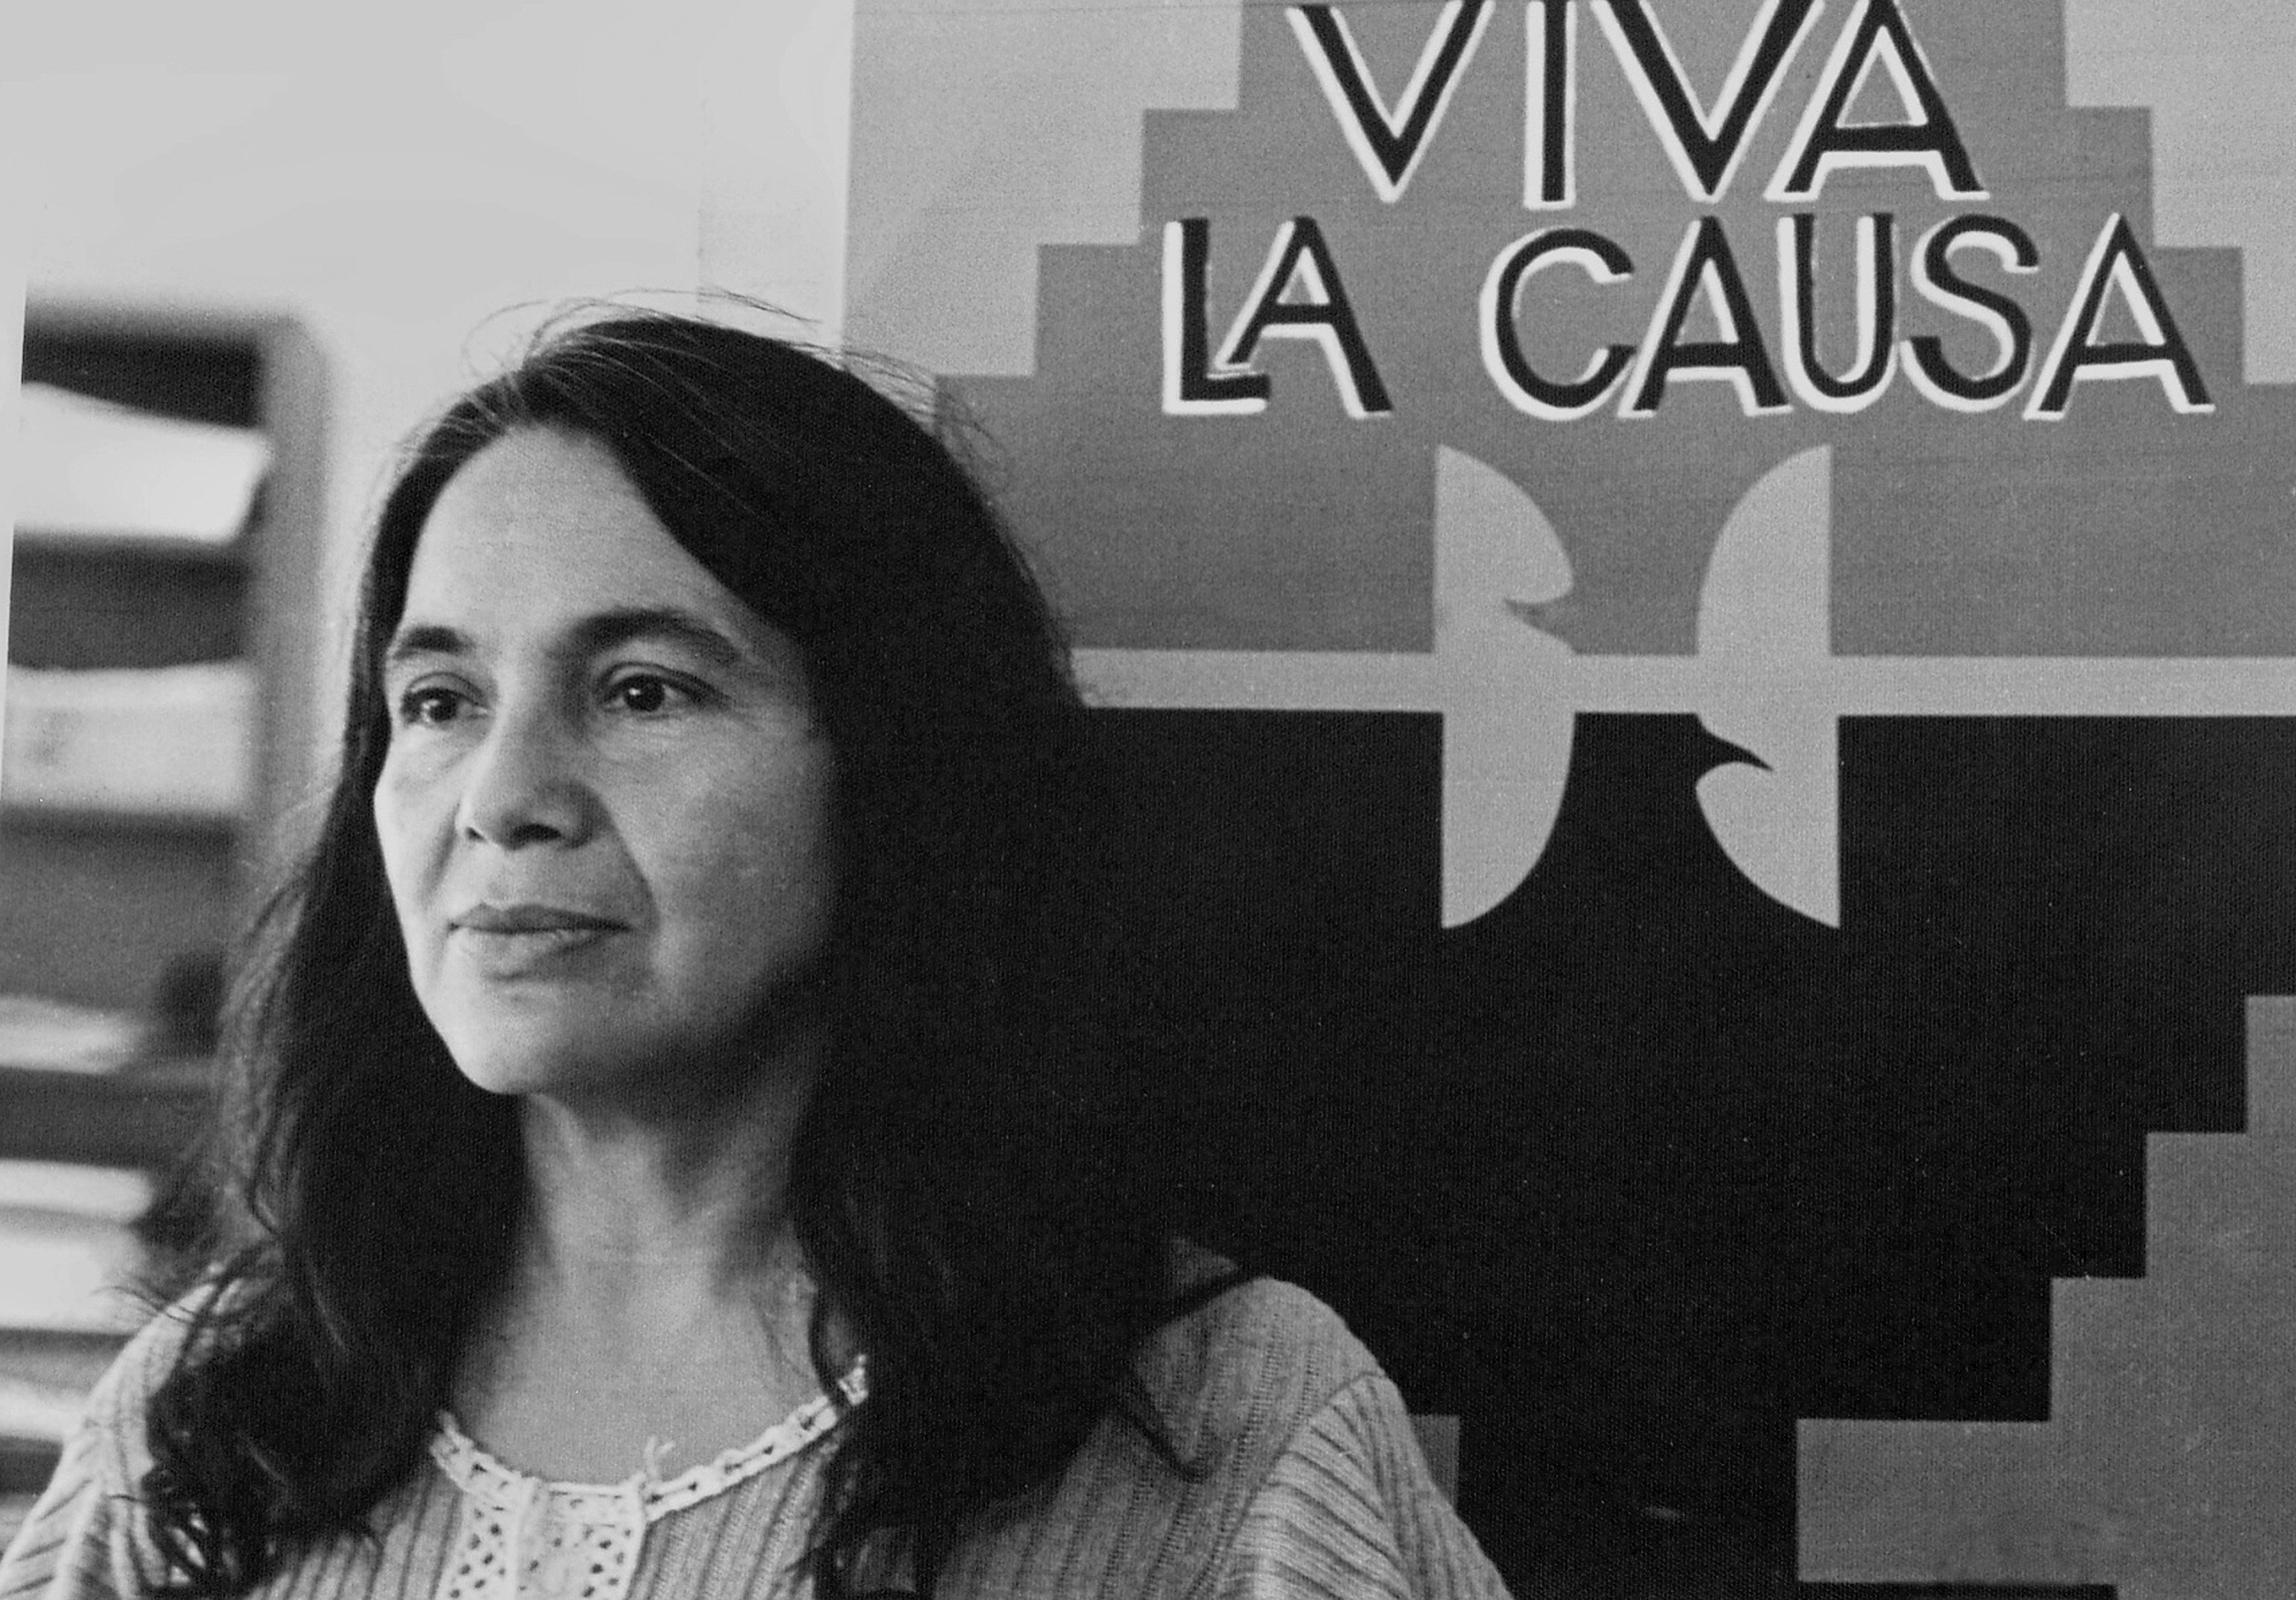 Civil Rights Activist and Lifelong Baseball Fan Dolores Huerta Honored By the LA Dodgers